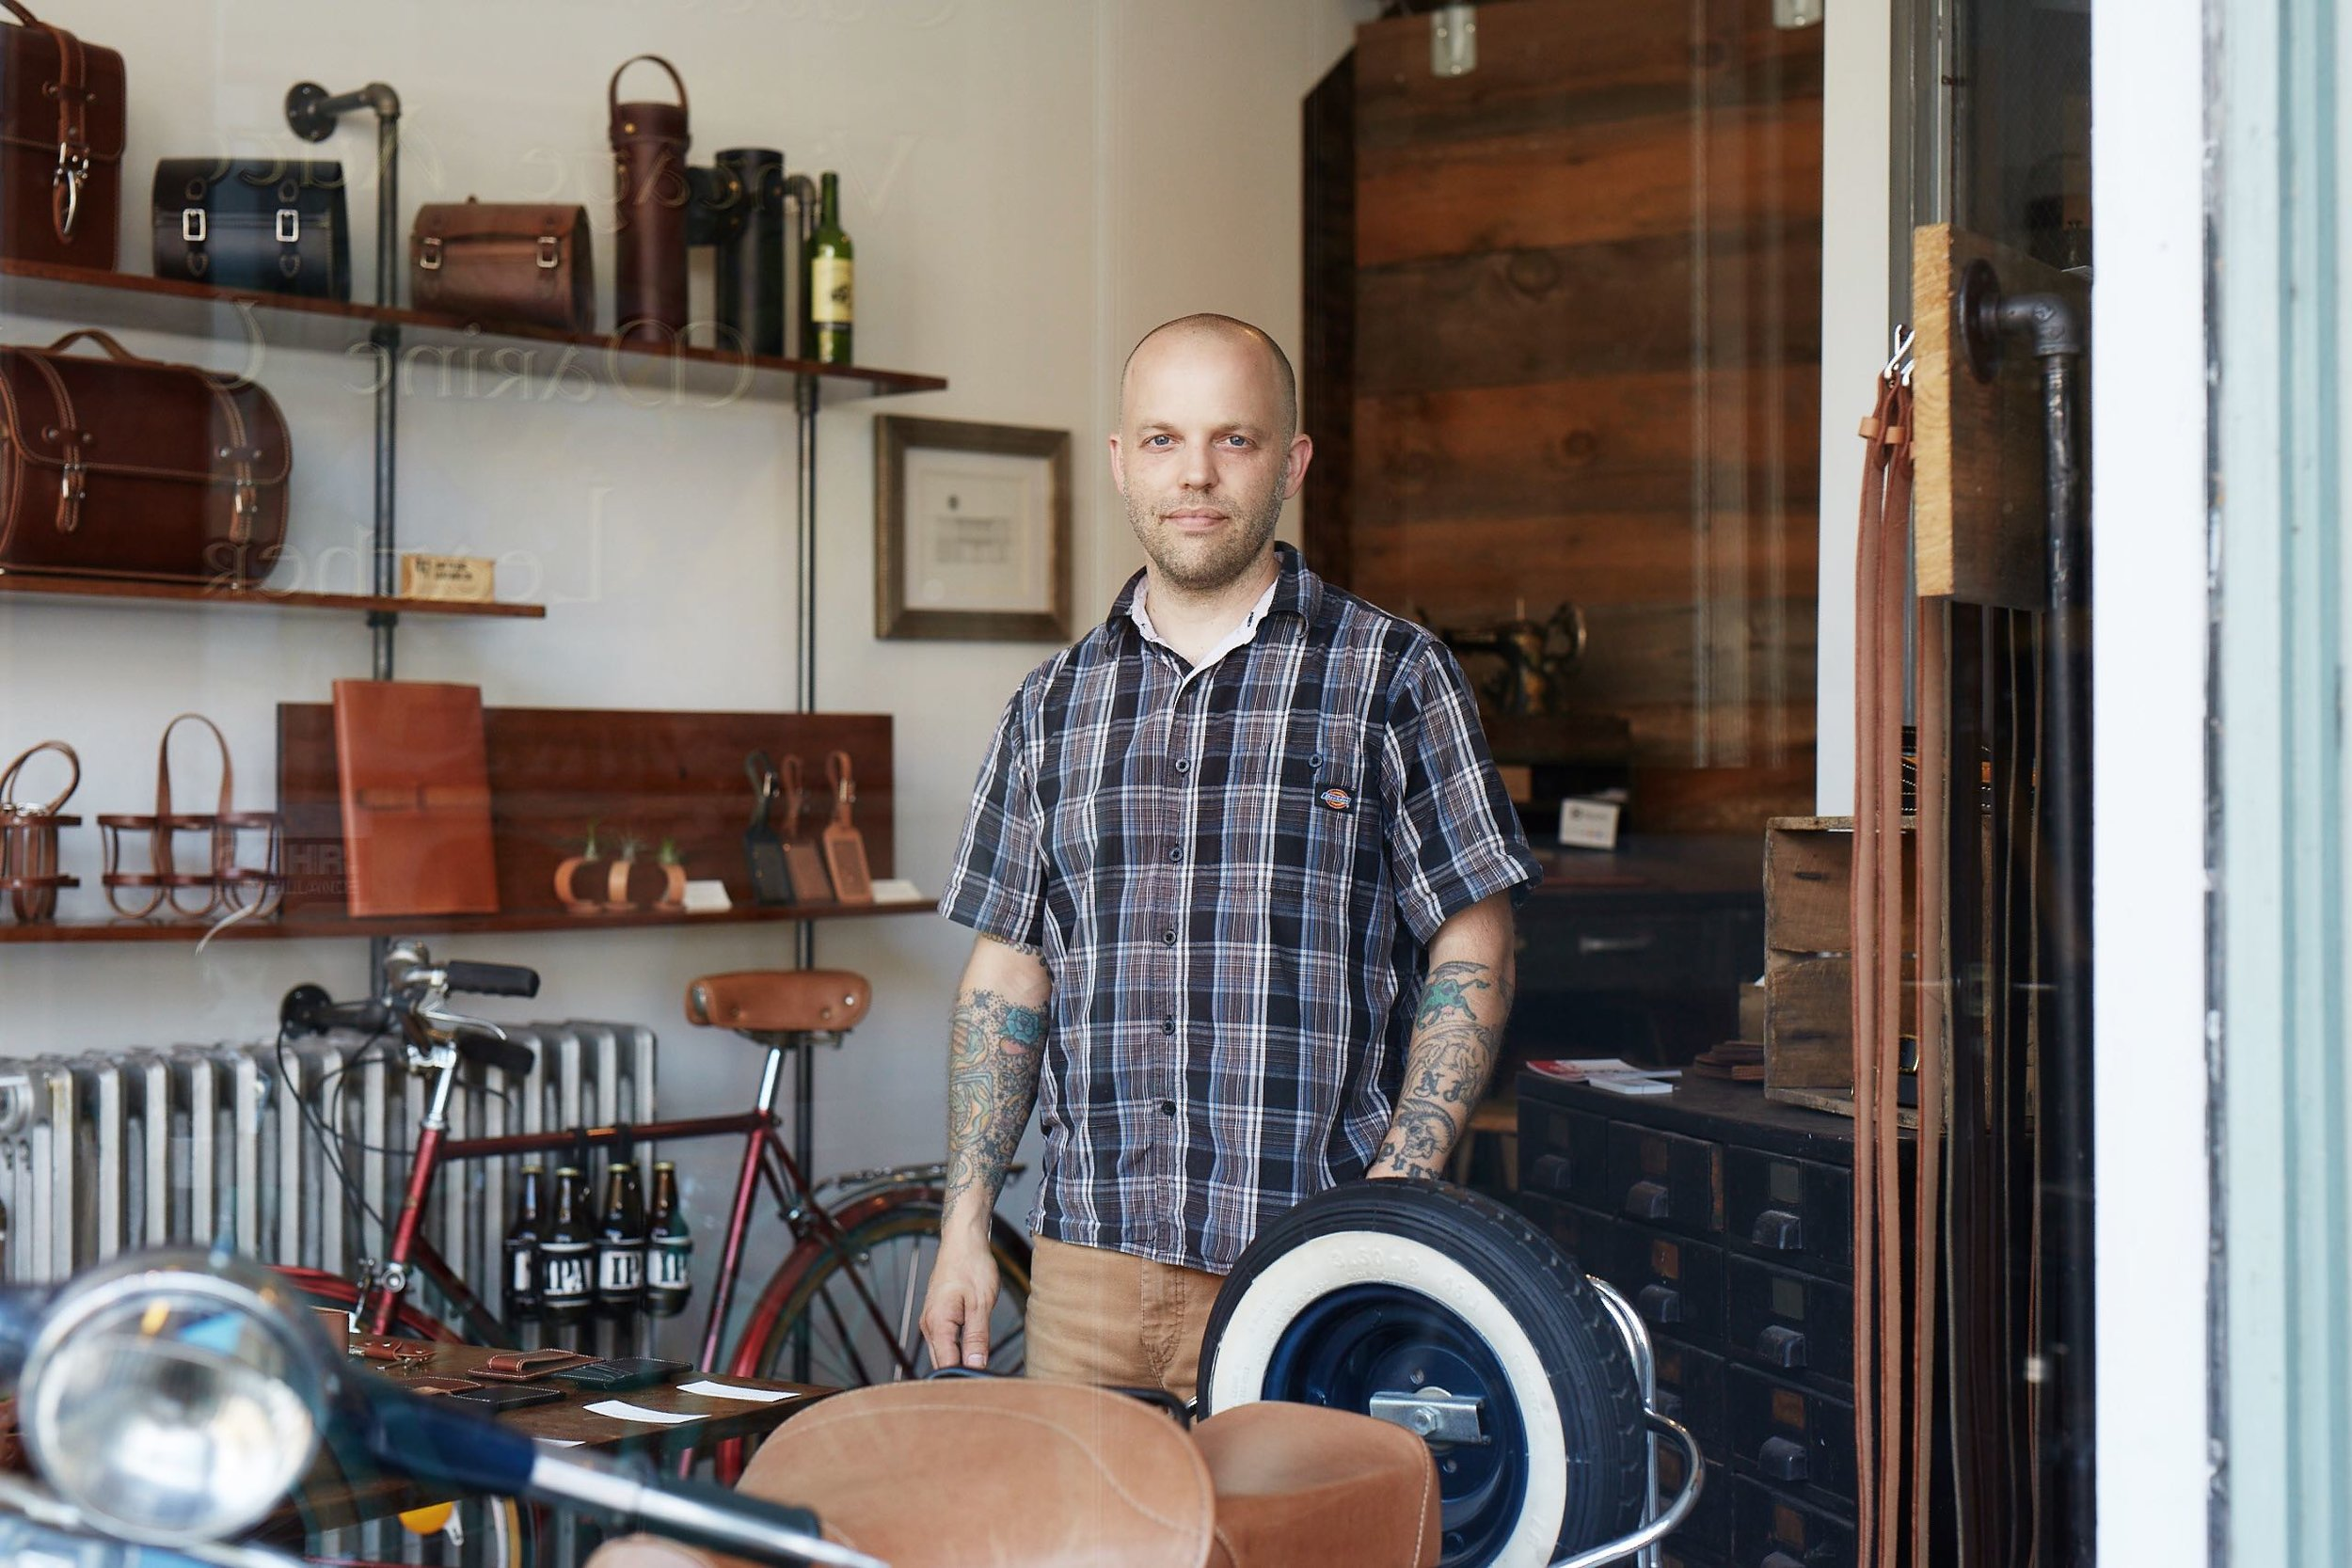 Born a craftsman, Jay Teske's talents led him from tattoo artist to  American Choppers  to the creation of Jay Teske Leather Co. Photo by Brandon Schulman.